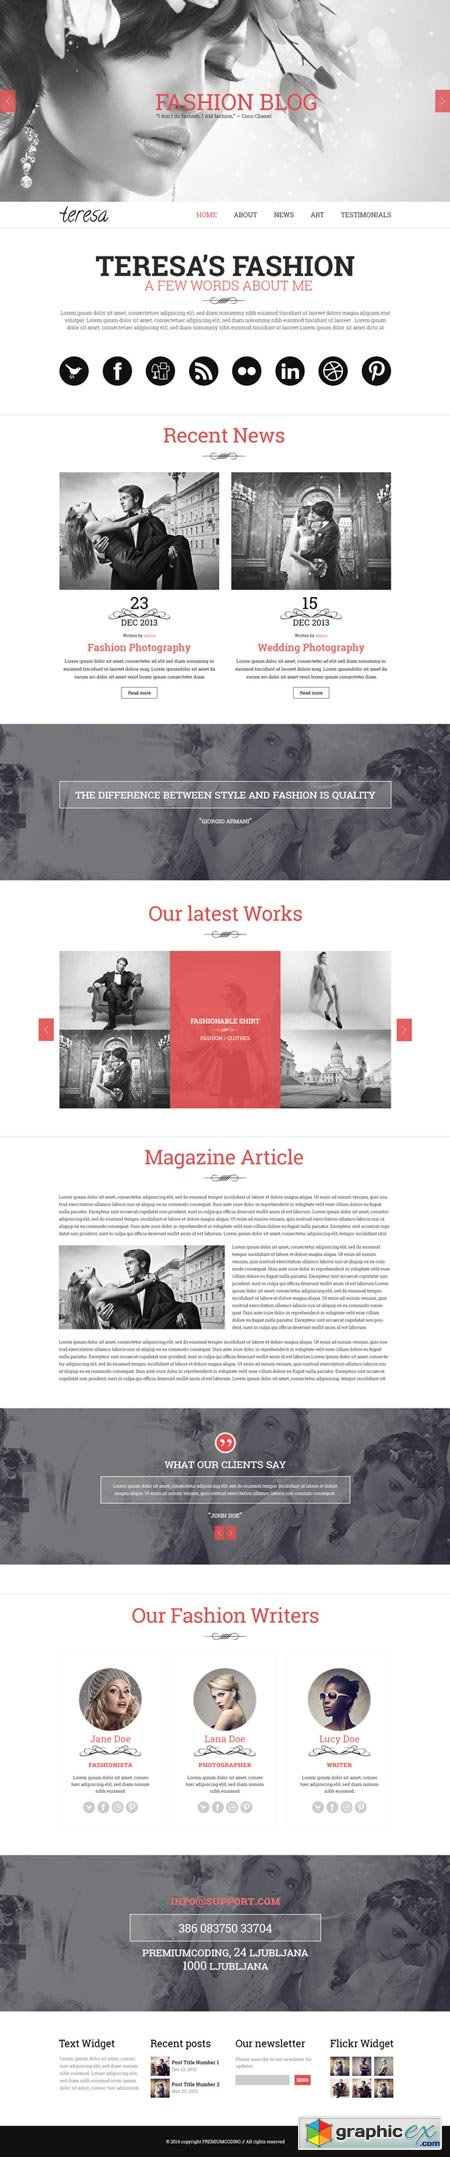 Teresa - A One Page PSD Template 22586